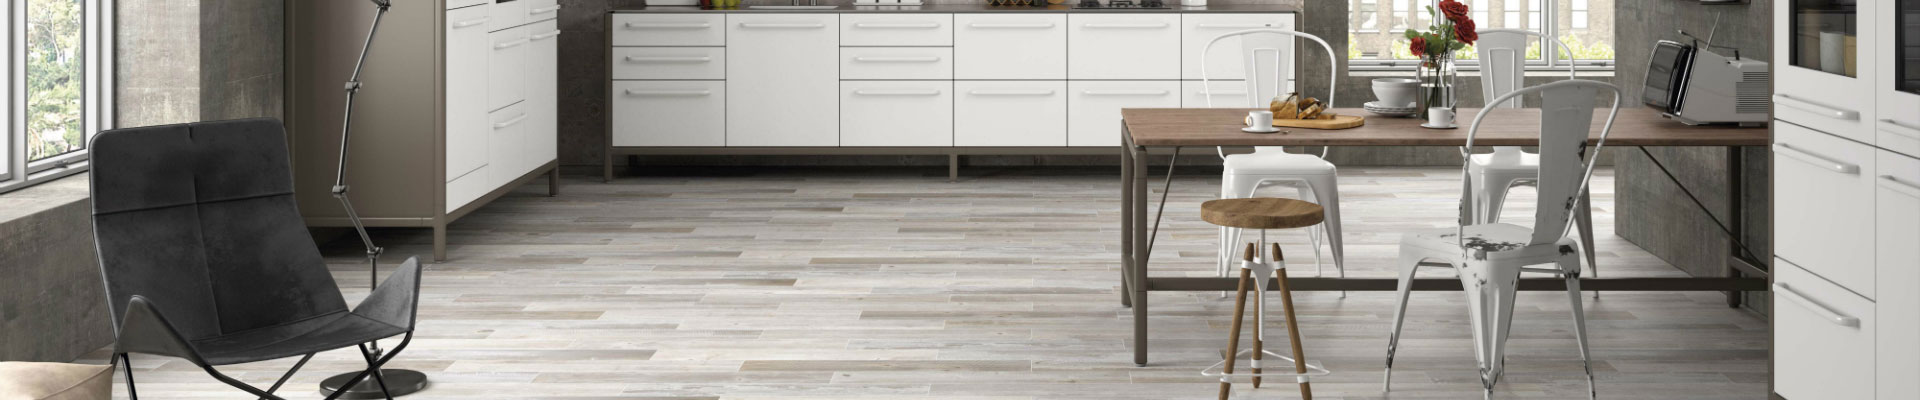 Porcelain Floor Tiles Wholesale Exterior Tiles Manufacturer & Vendor